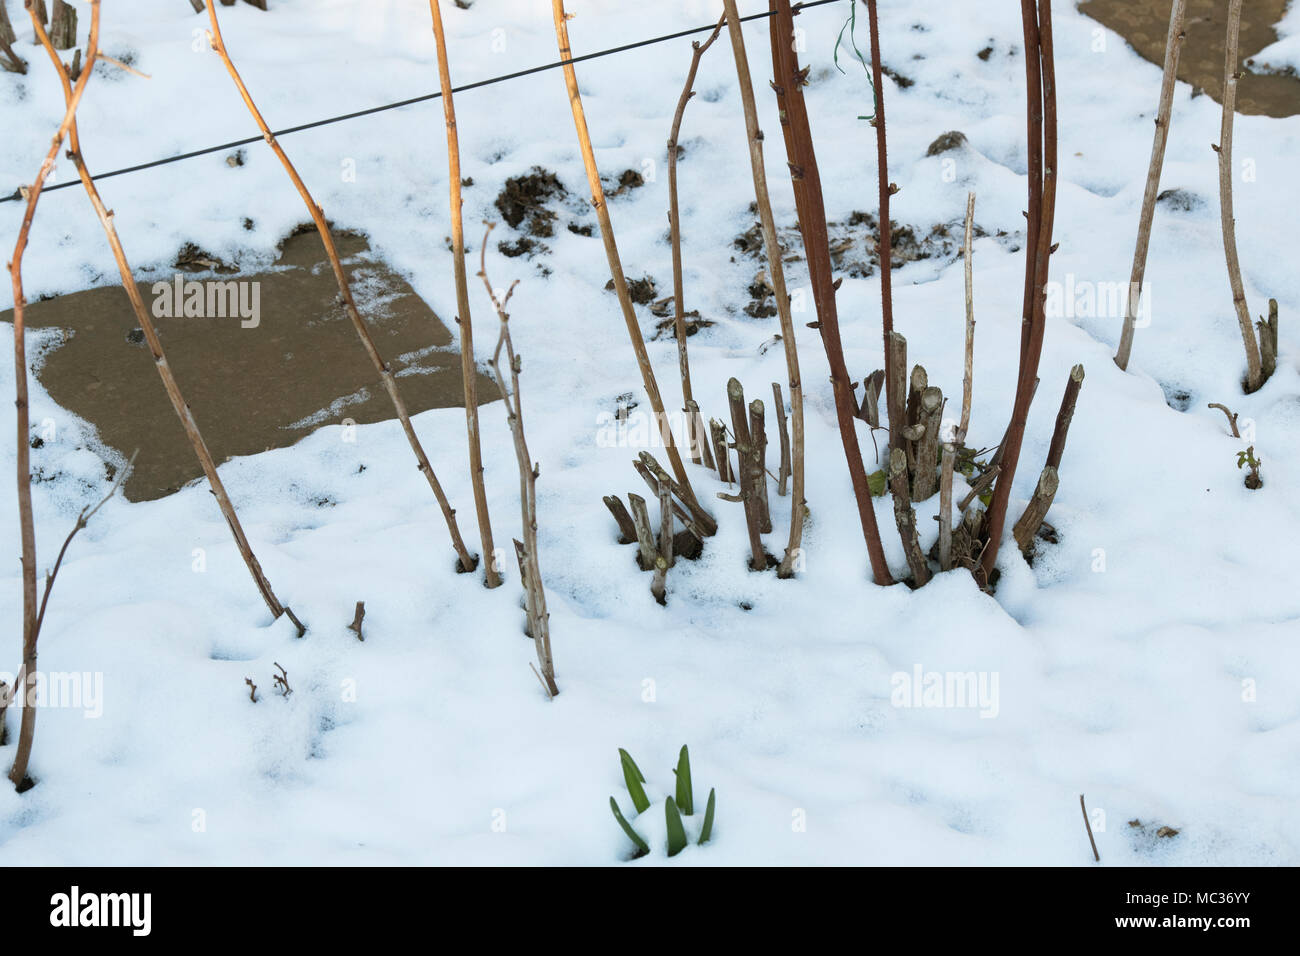 Rubus. Cut back raspberry stems in the march snow in an english garden. UK - Stock Image